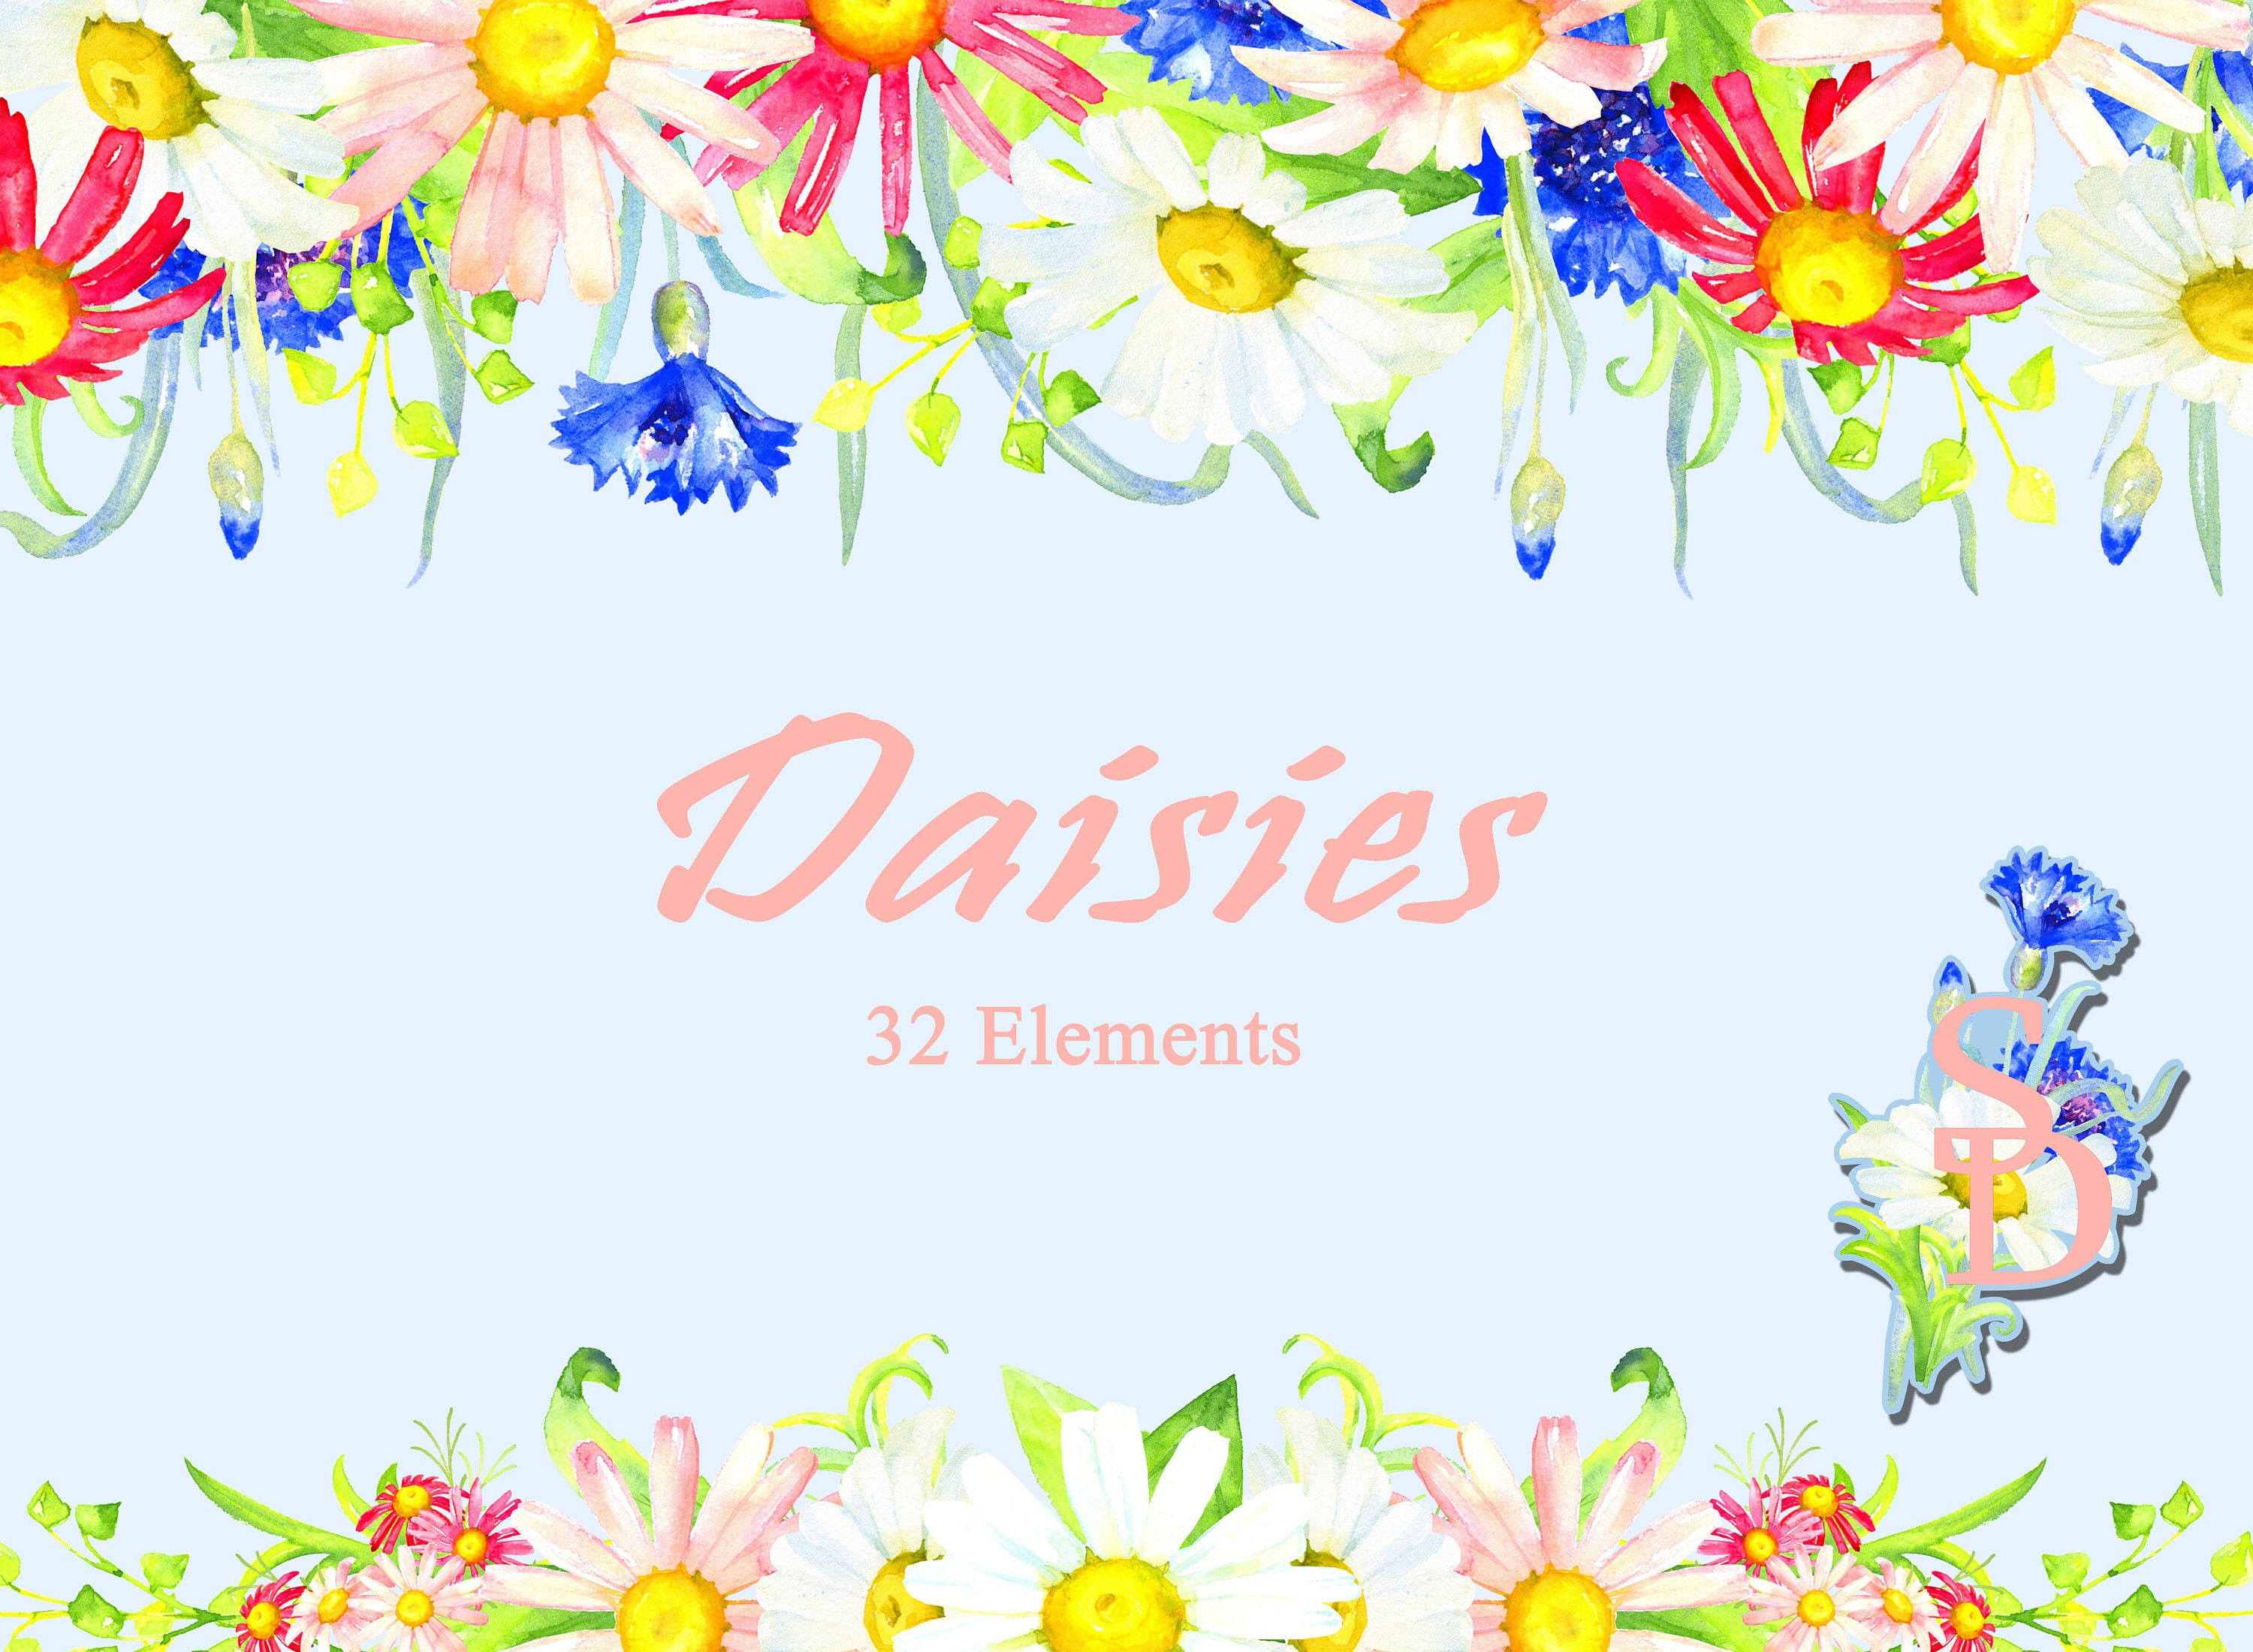 Daisies flowers 32 elements watercolor clipart hand painted etsy zoom izmirmasajfo